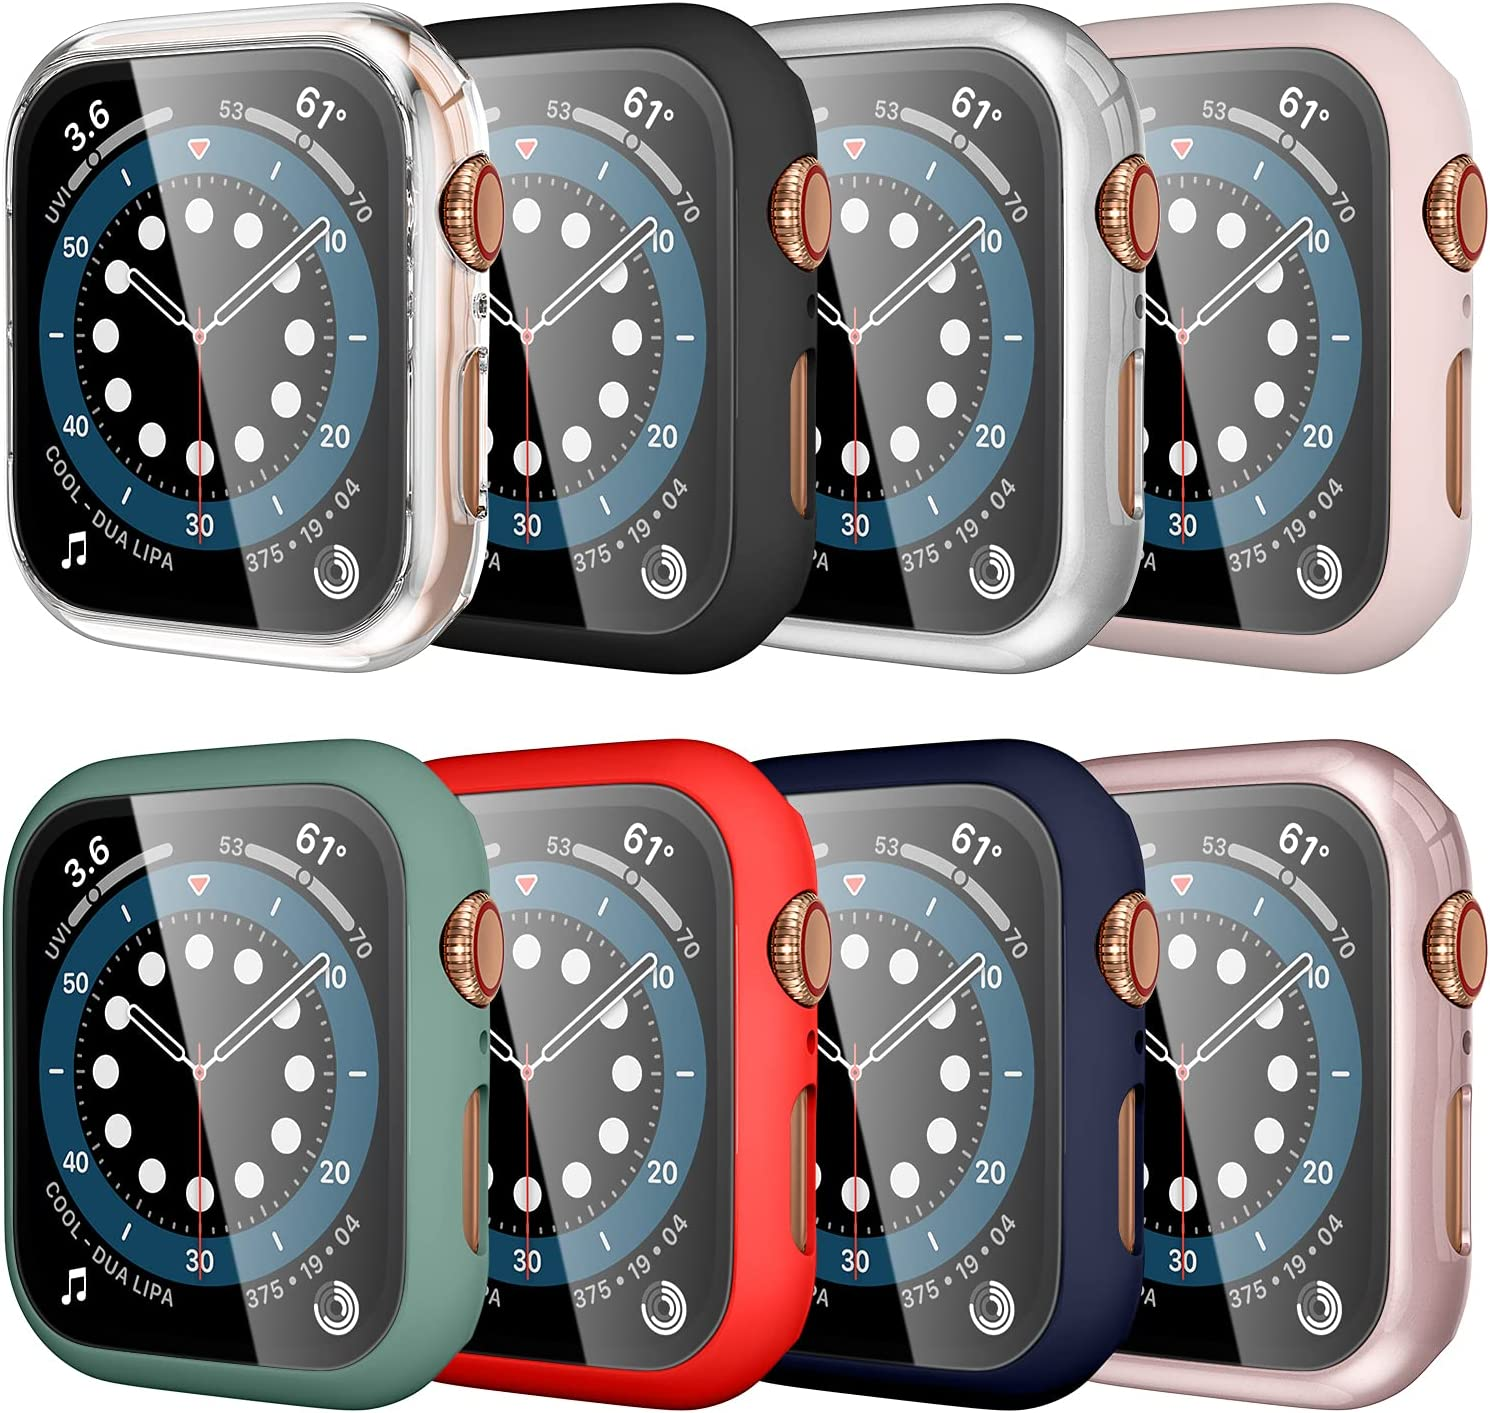 [8 Pack] SNBLK Compatible for Apple Watch Case 44mm Series 6 5 4 SE with Built-in Tempered Glass Screen Protector, Touch Sensitive Full Protective Hard PC Bumper Cover, 44mm